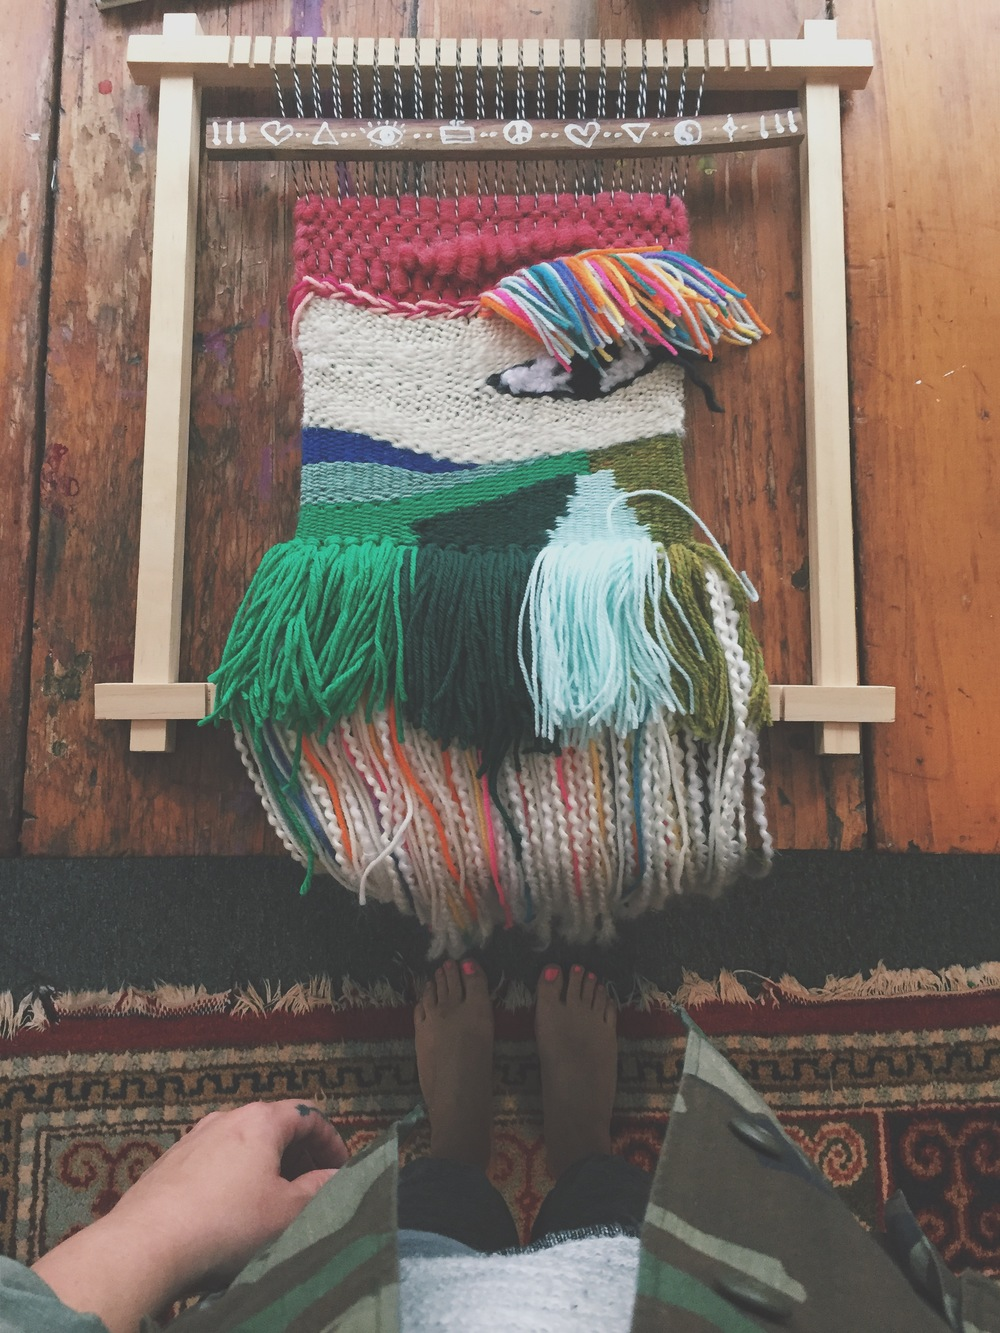 Busy Hands Quiet Minds: Weaving as Meditation with Samantha LaMont & Natalie Novak